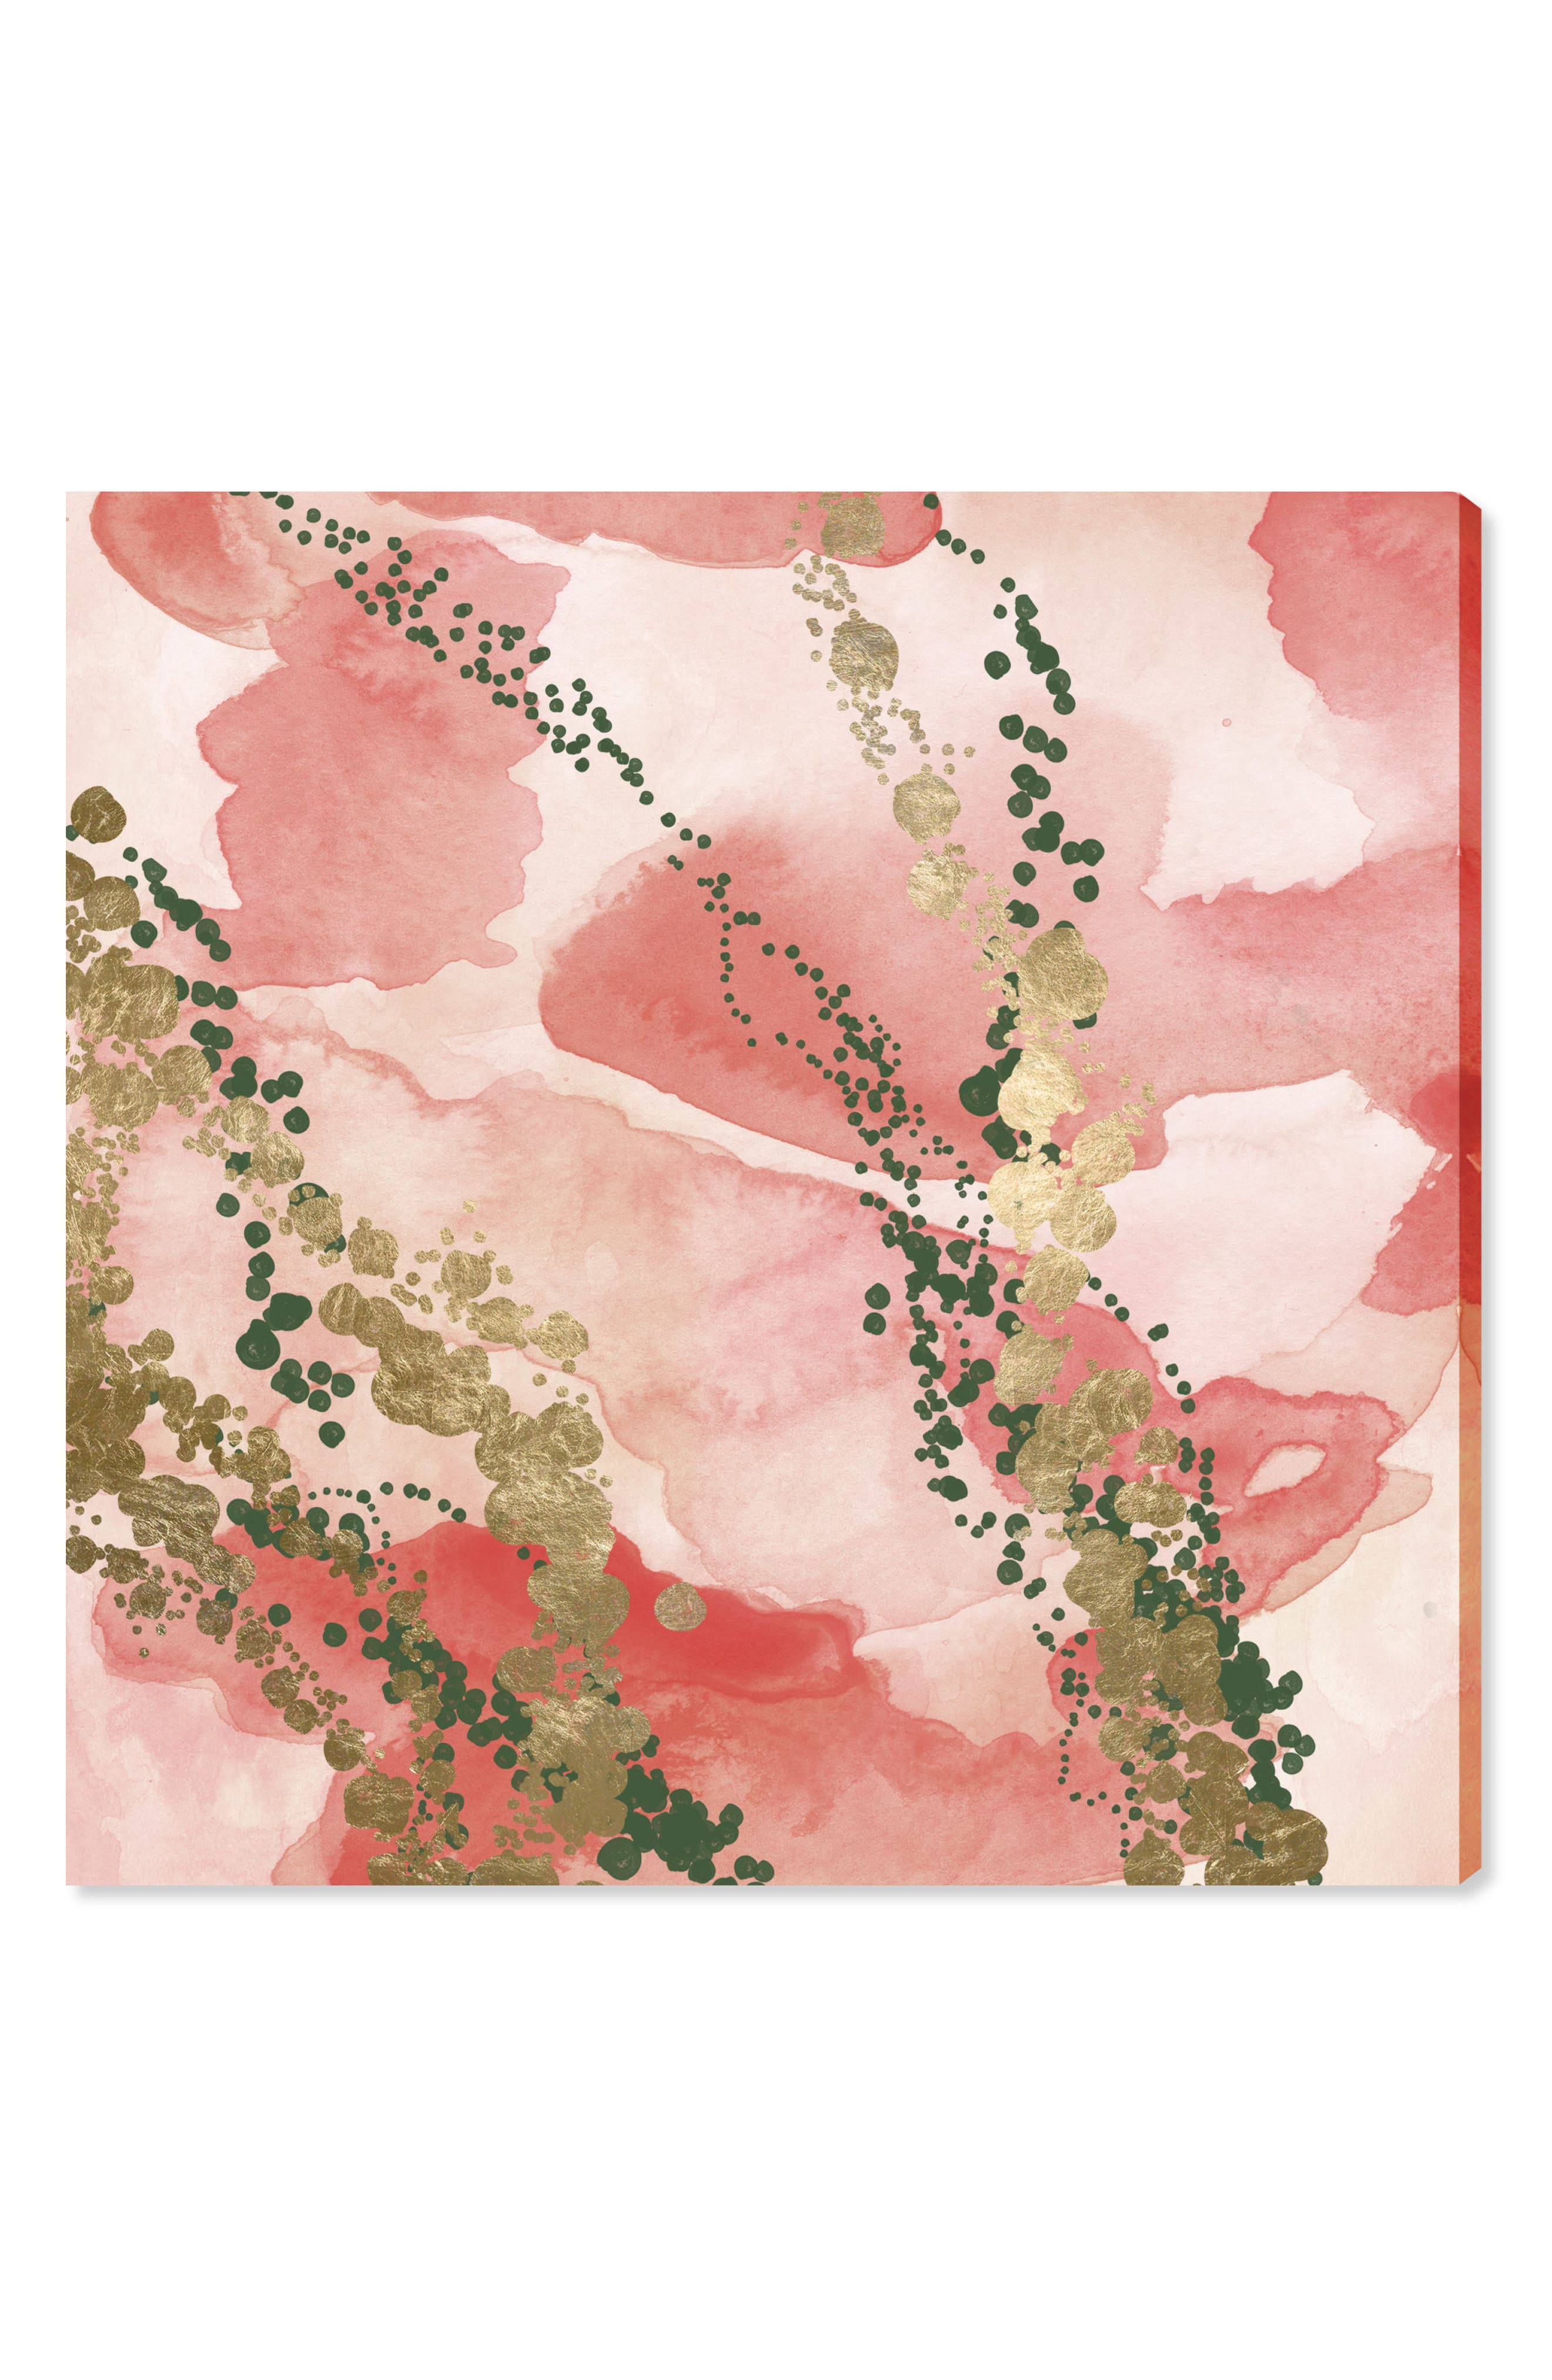 Oliver Gal Even More Plant Love Canvas Wall Art